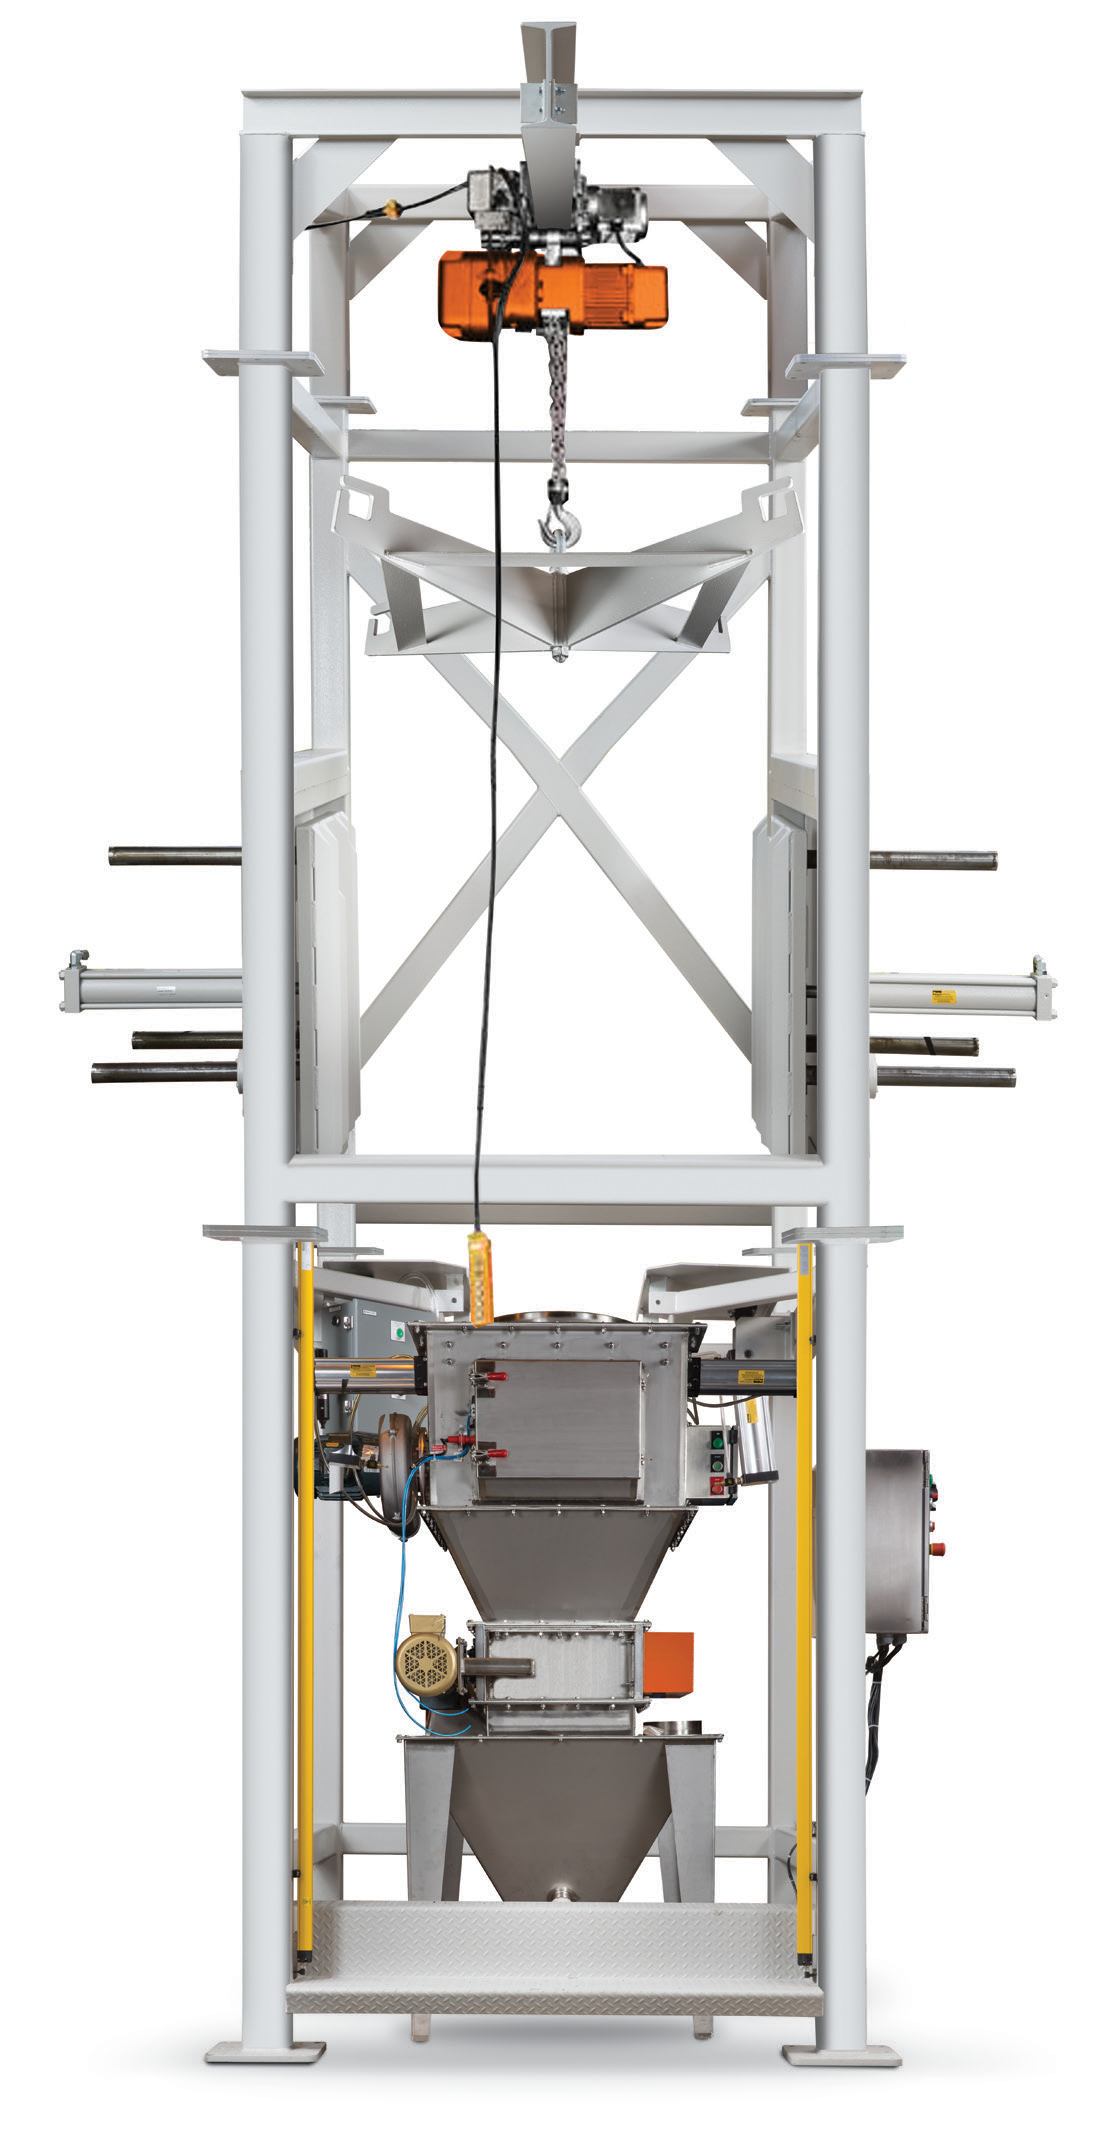 Bulk Bag Unloading Stations with Integral Pneumatic Conveying System Accurately Delivers Metered Materials